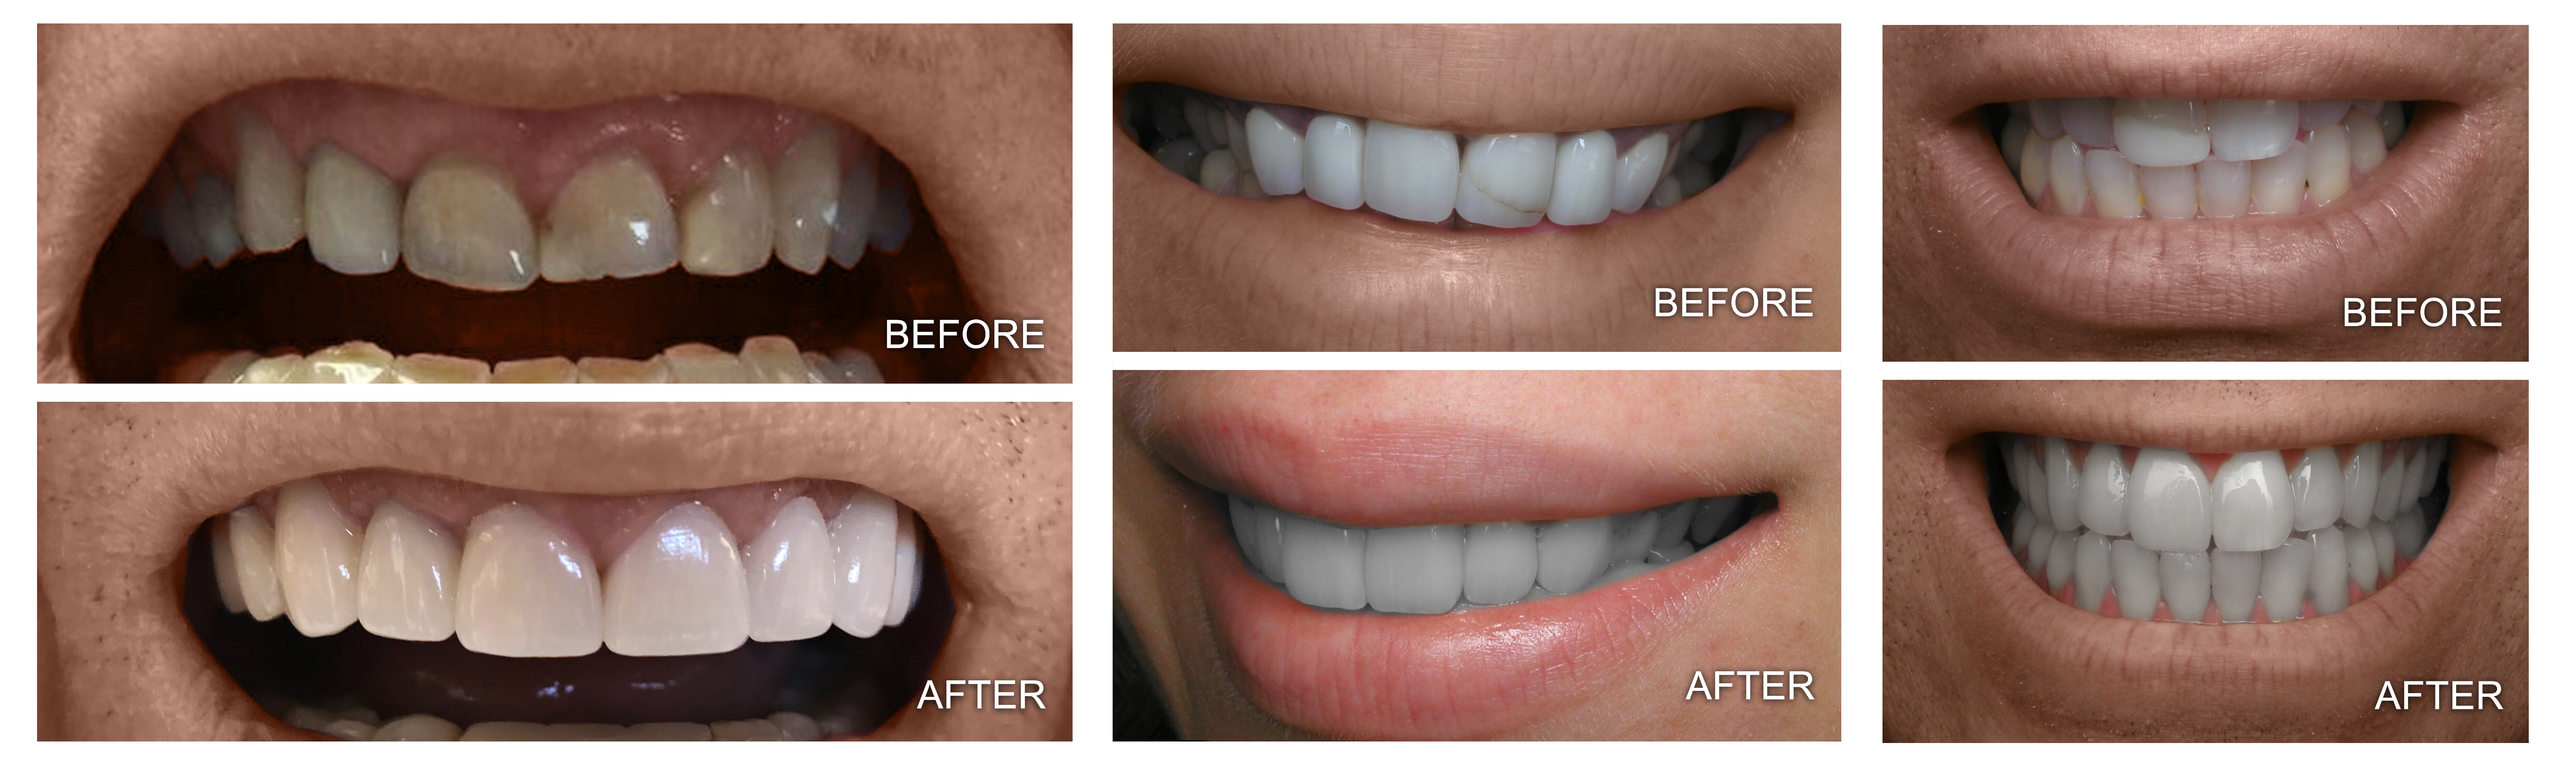 Before and After Our Dental Services in Framingham, MA